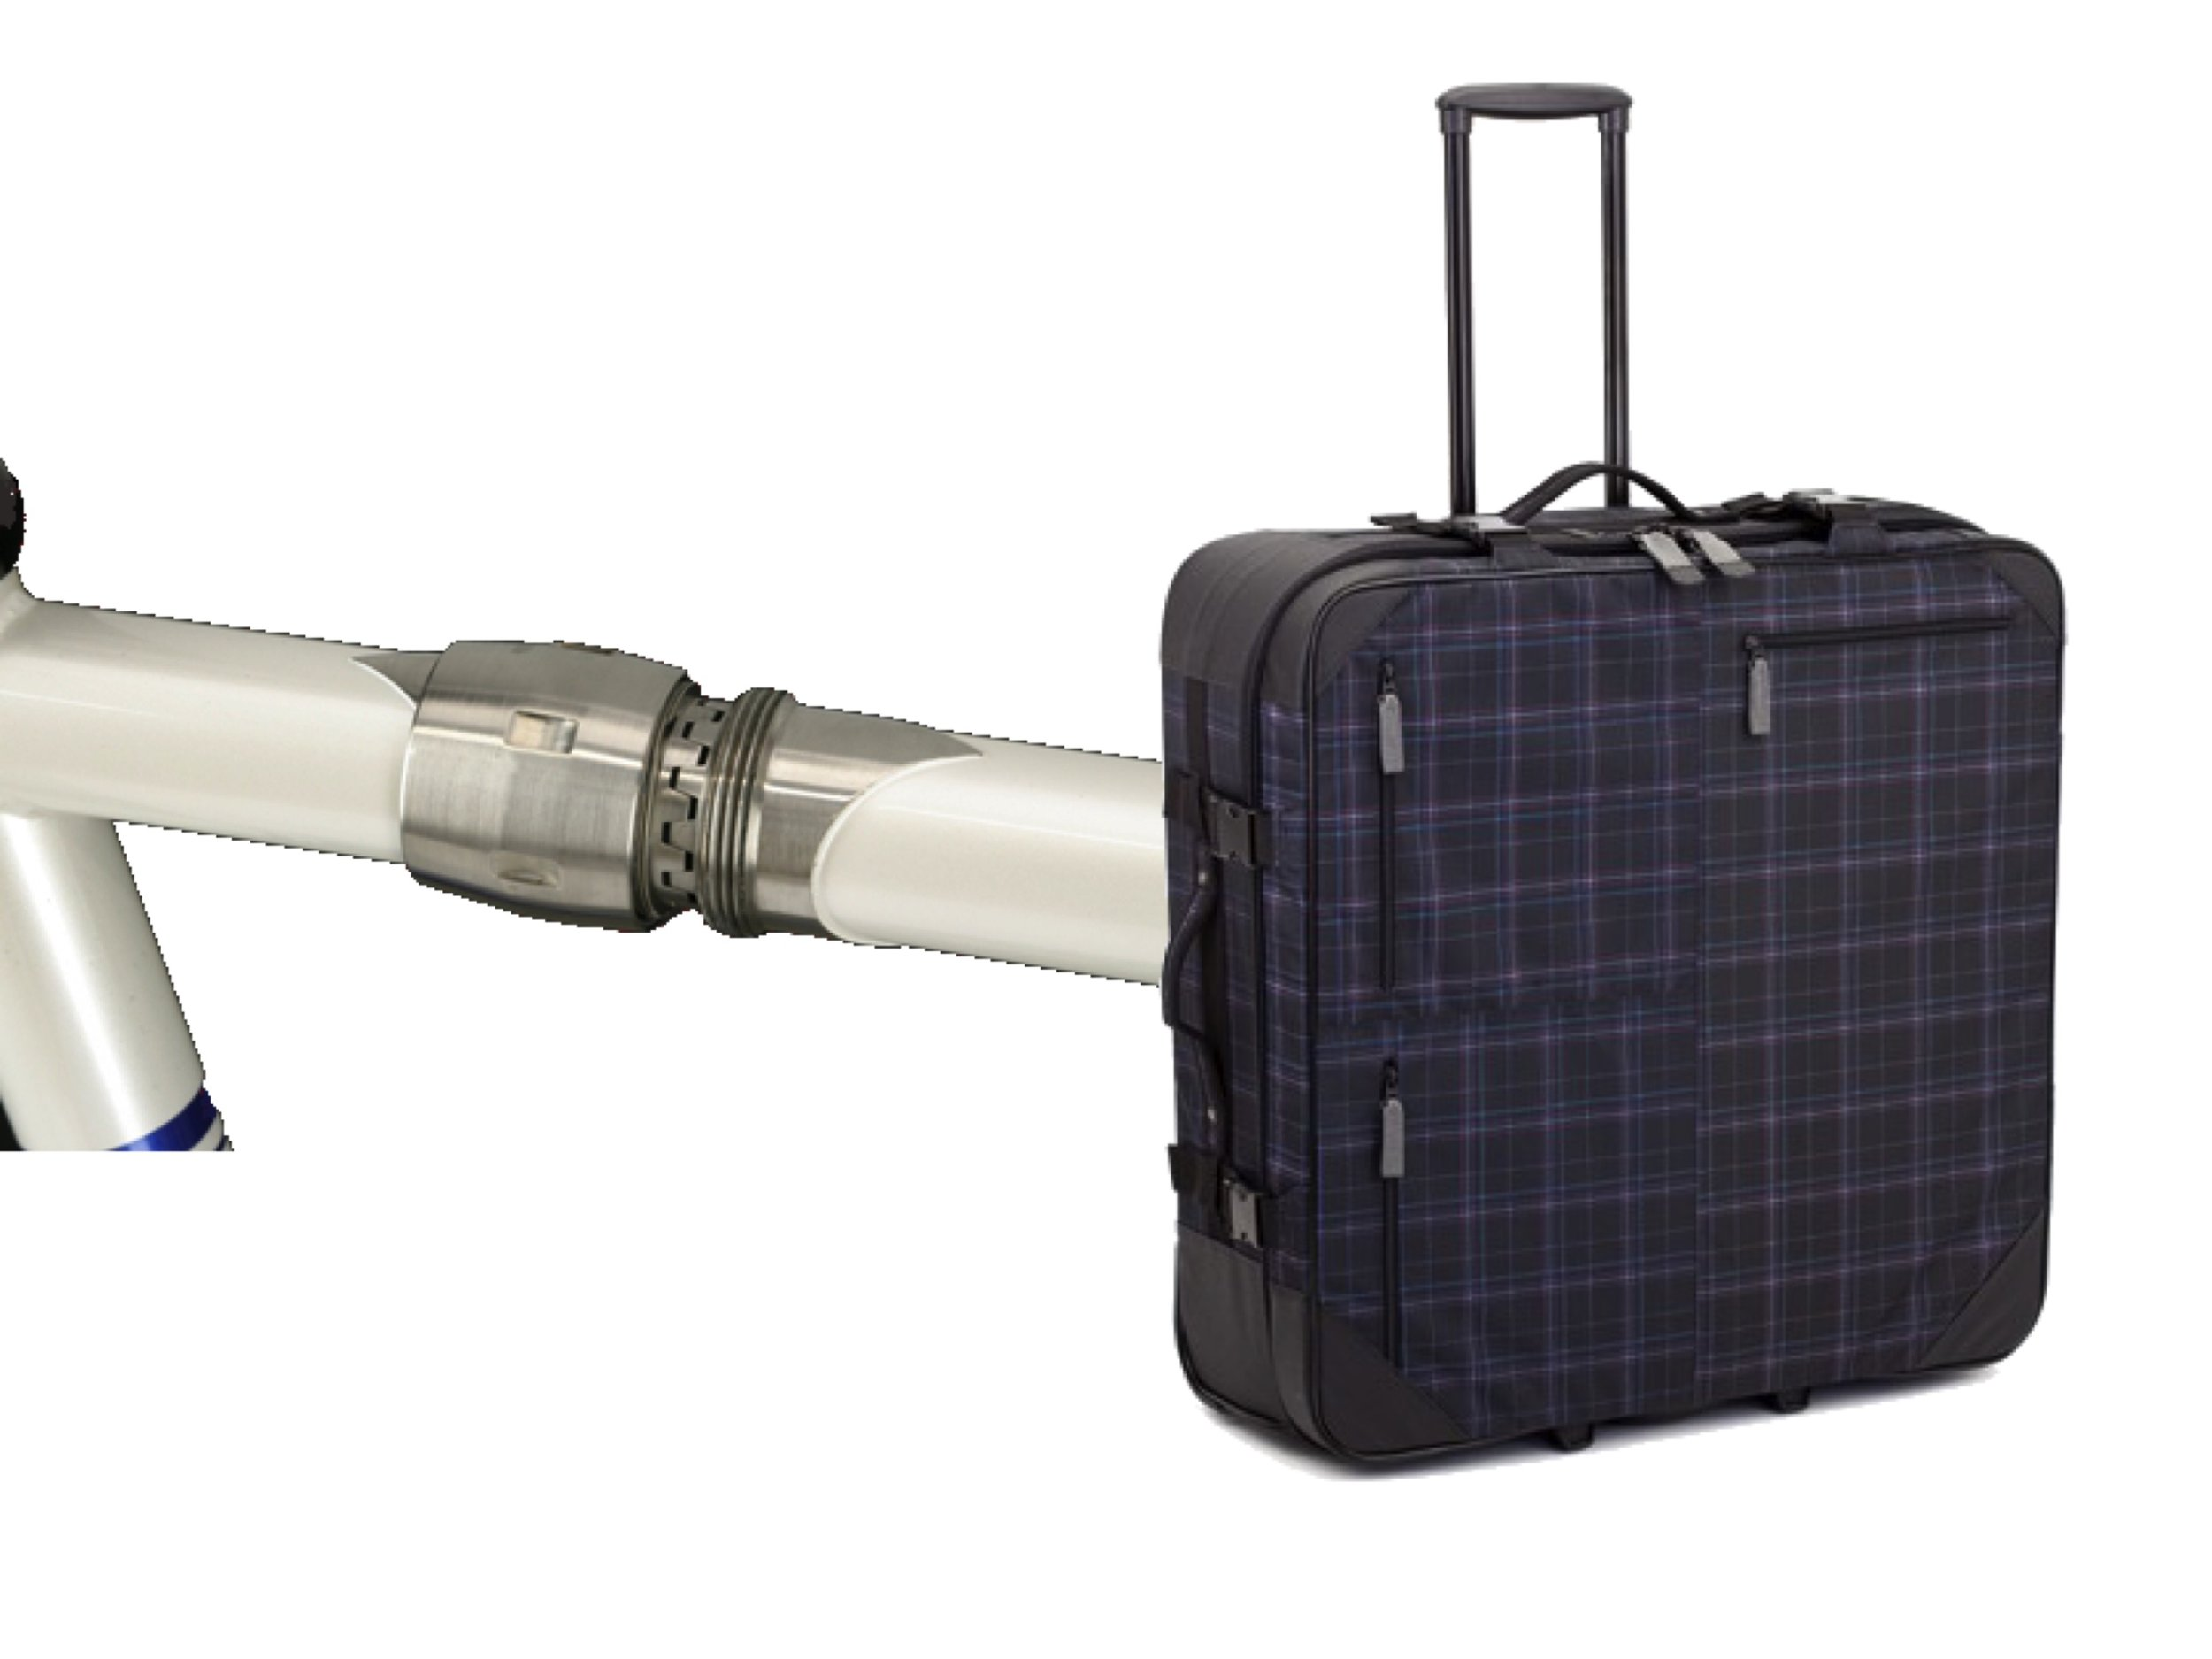 Co-Pilot Couplers and Bicycle Travel Case